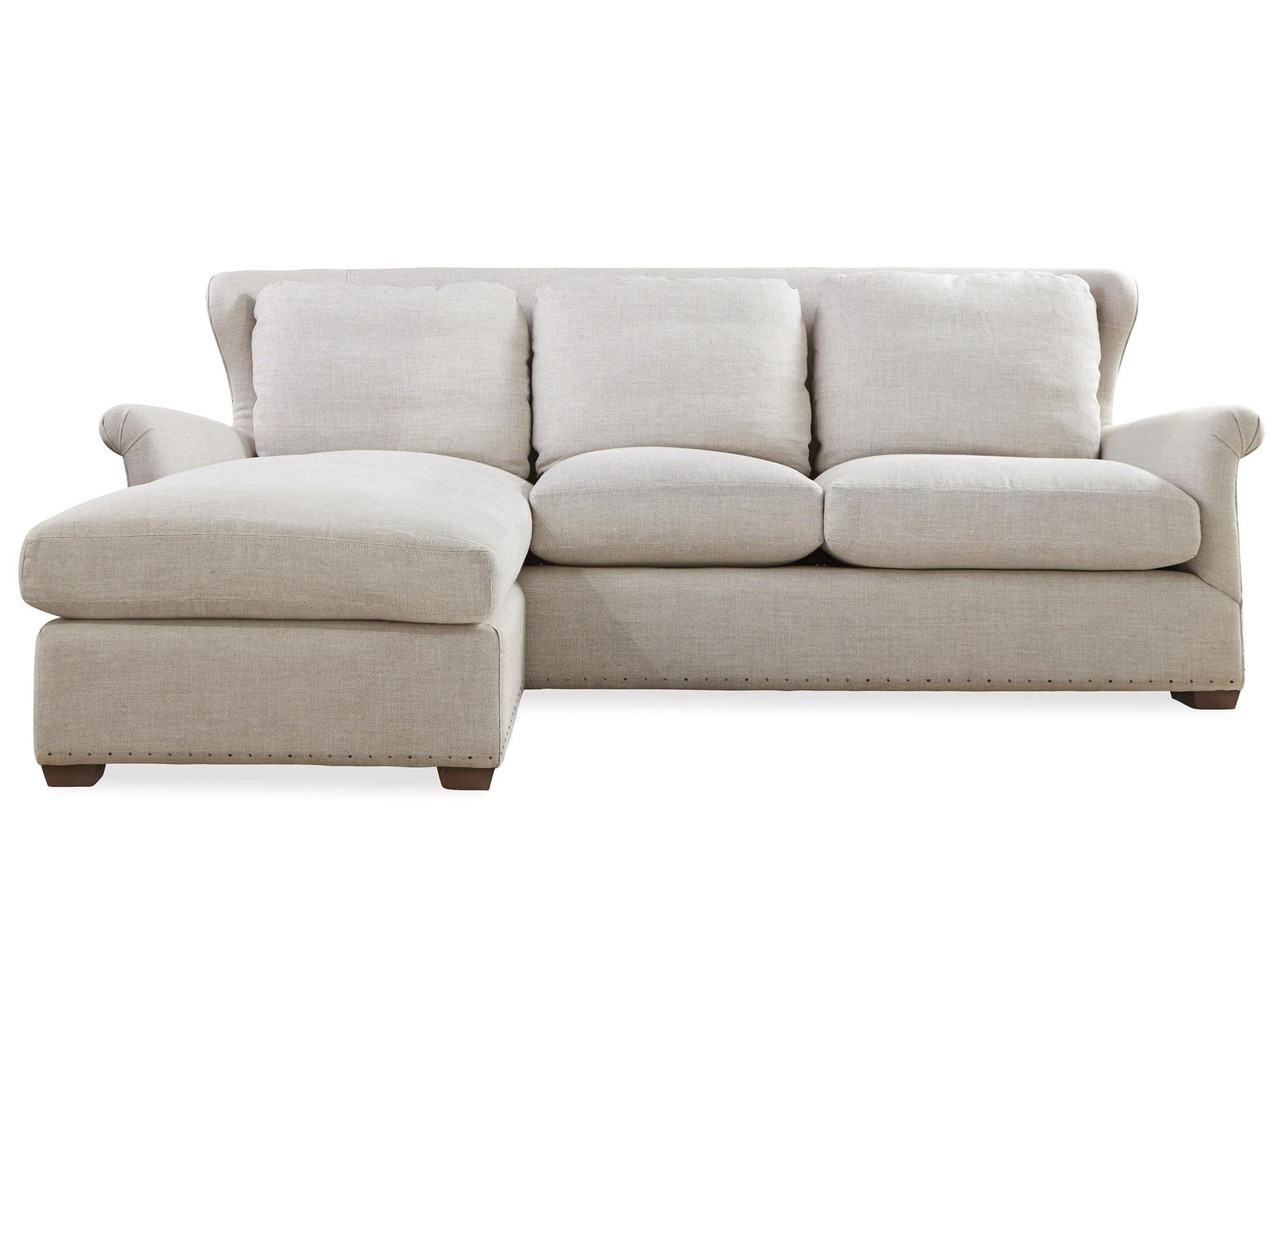 belgian linen sofa woodland imports metal rectangular console and table haven upholstered wingback sectional zin home chaise